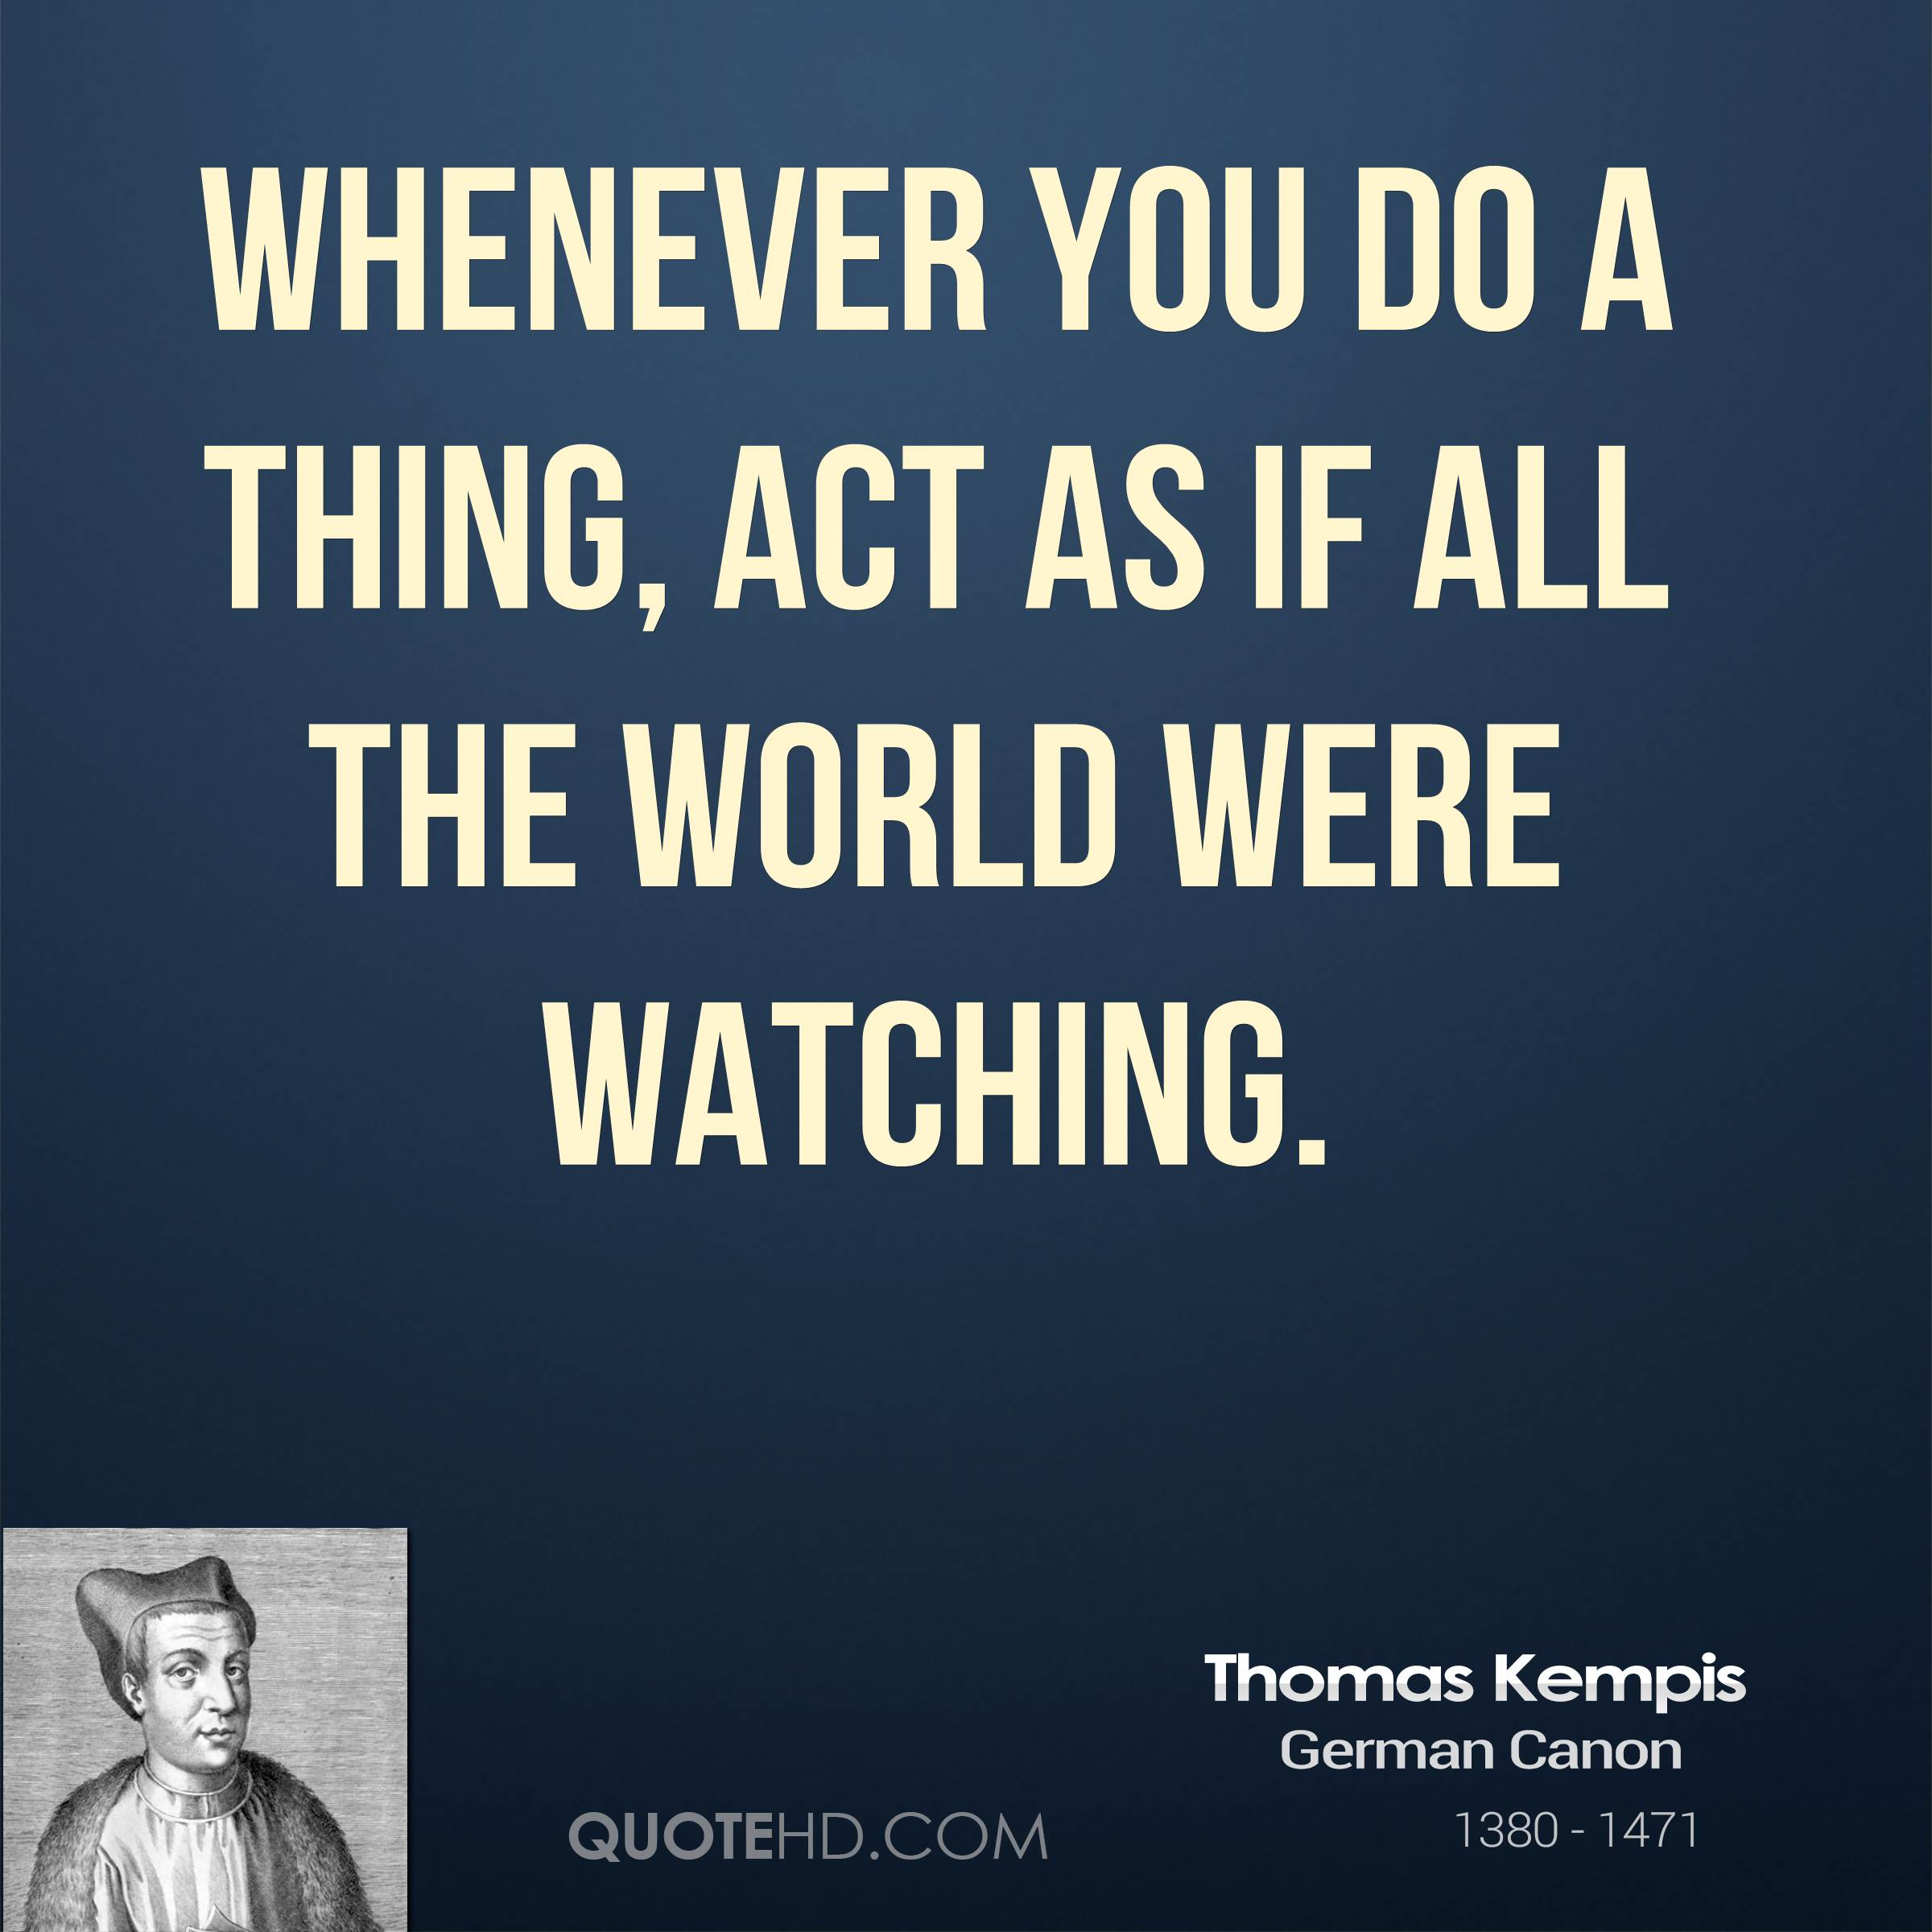 Whenever you do a thing, act as if all the world were watching.